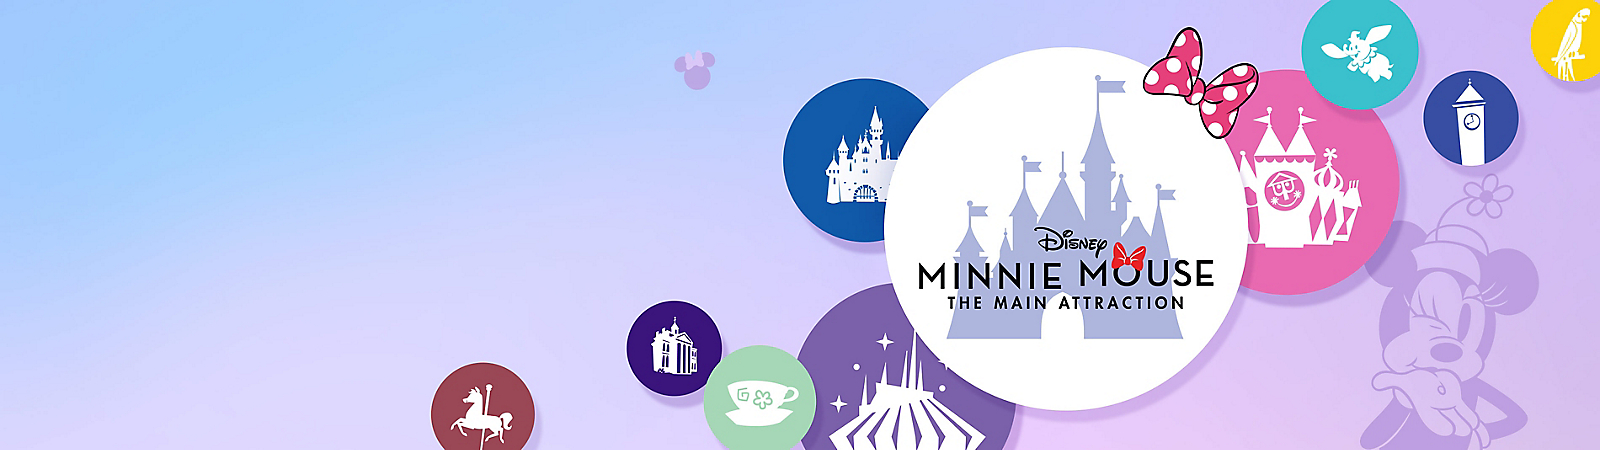 Minnie Mouse The Main Attraction logo with Disney Parks graphics including Castle and Space Mountain